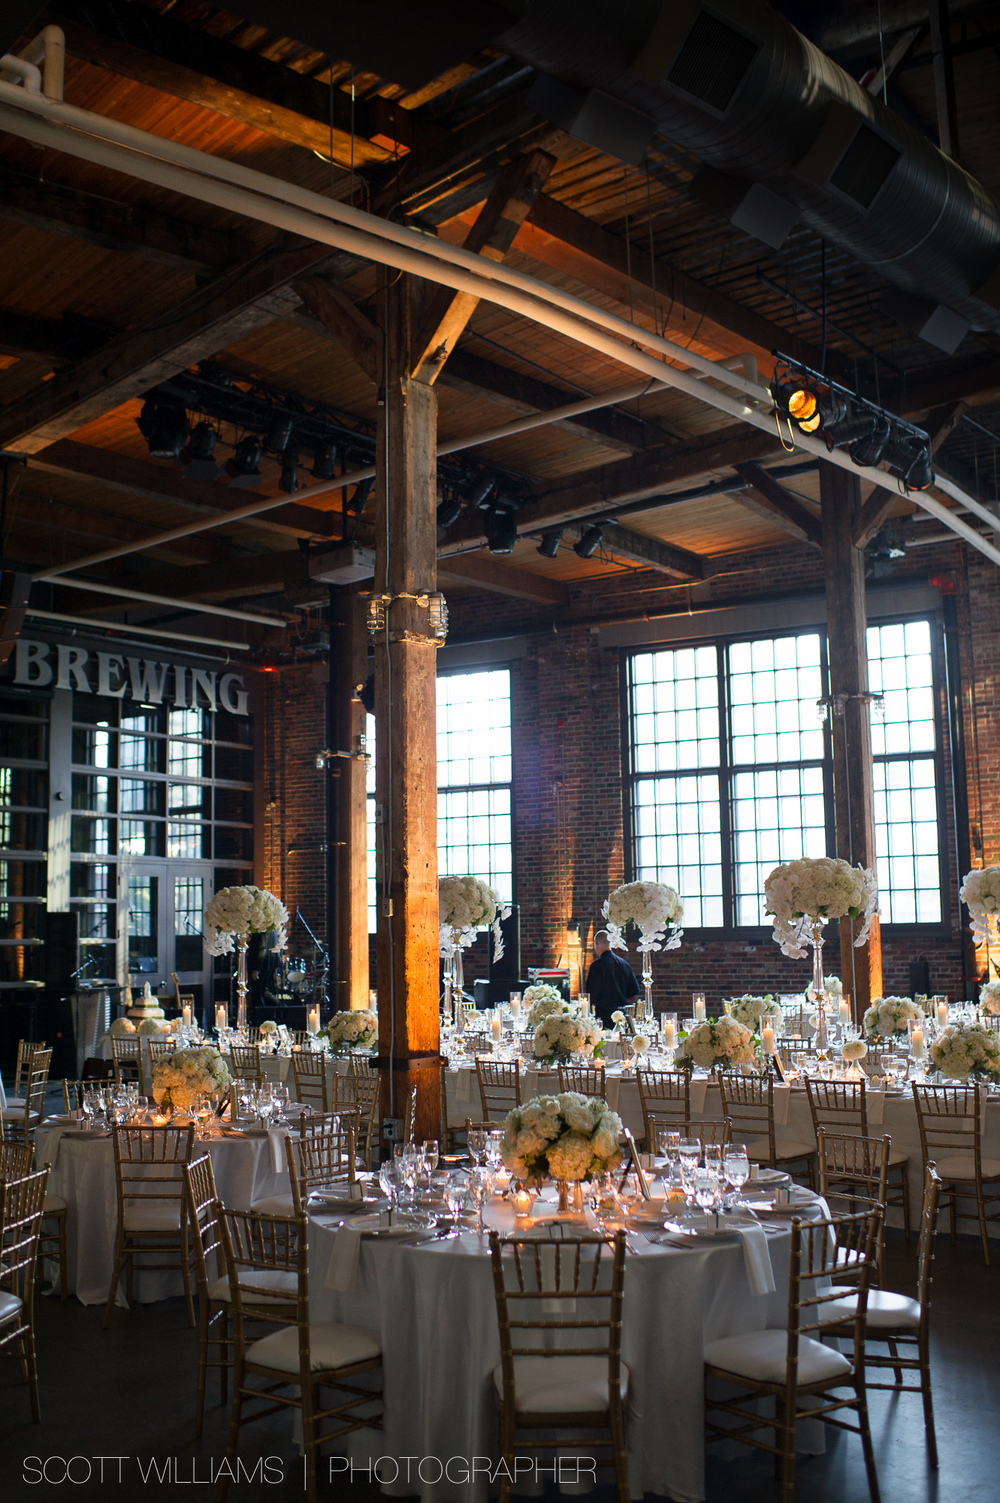 steamwhistle-brewery-wedding-toronto-008.jpg